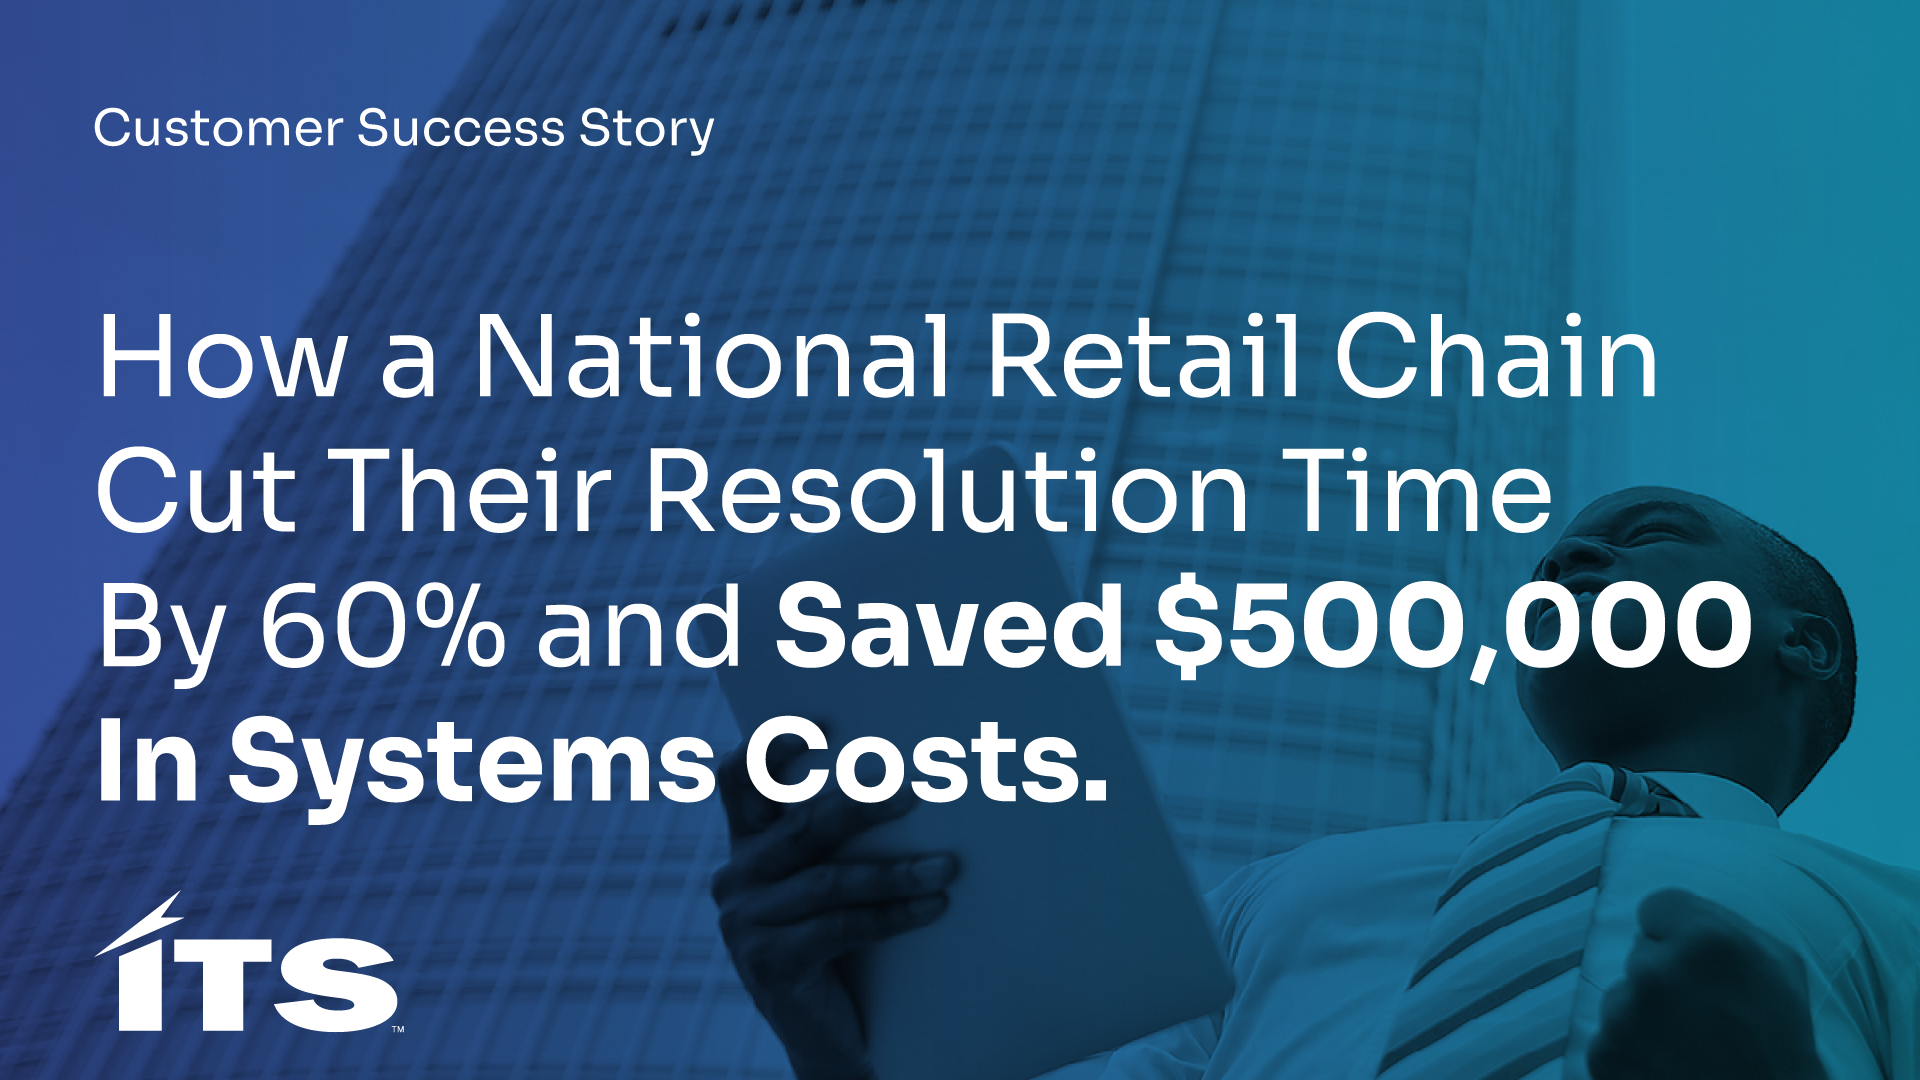 View the customer success story